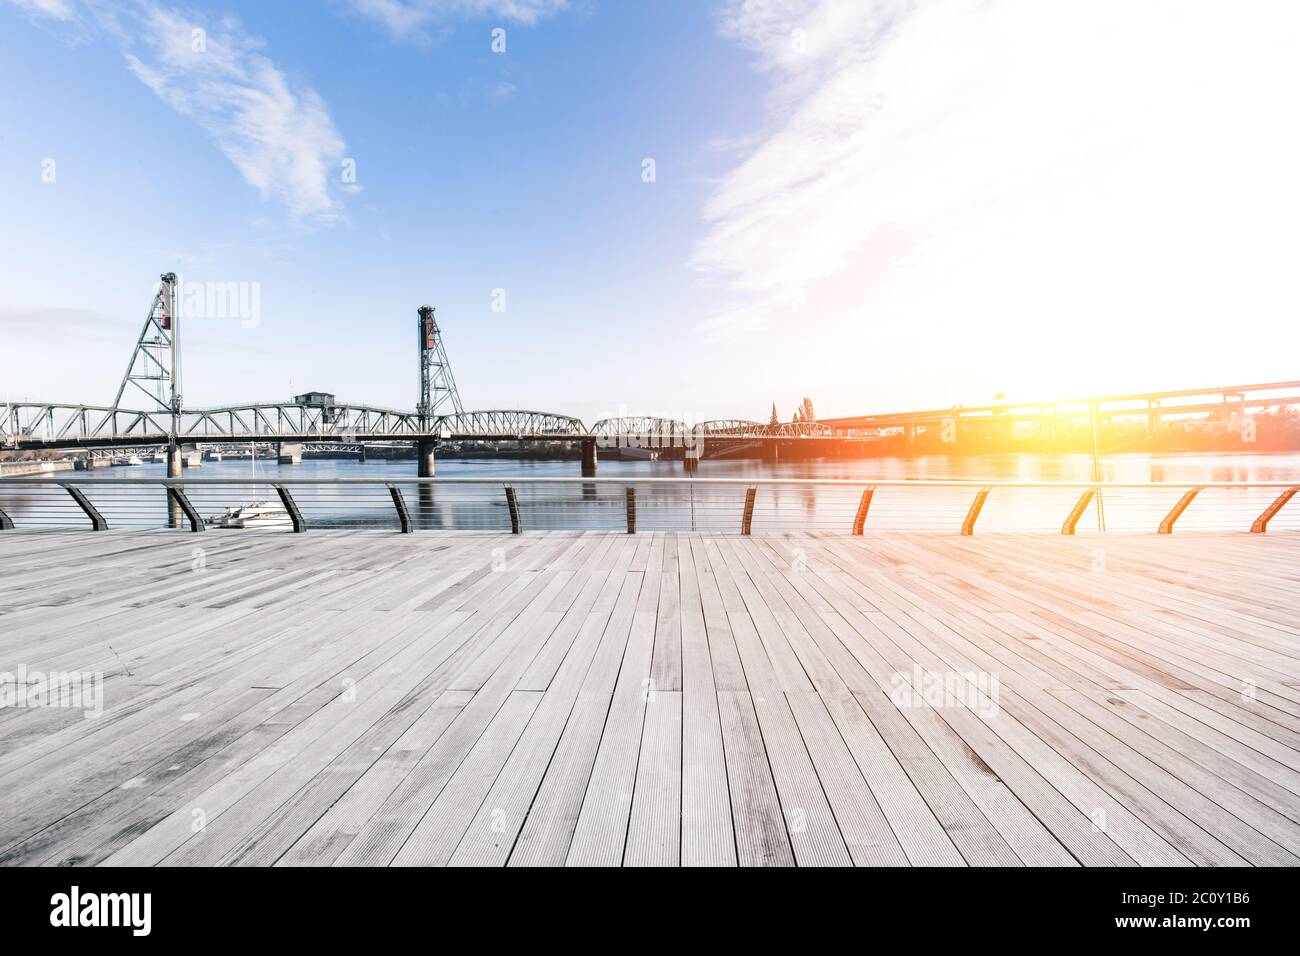 empty wood floor and bridge over water at sunrise in portland Stock Photo